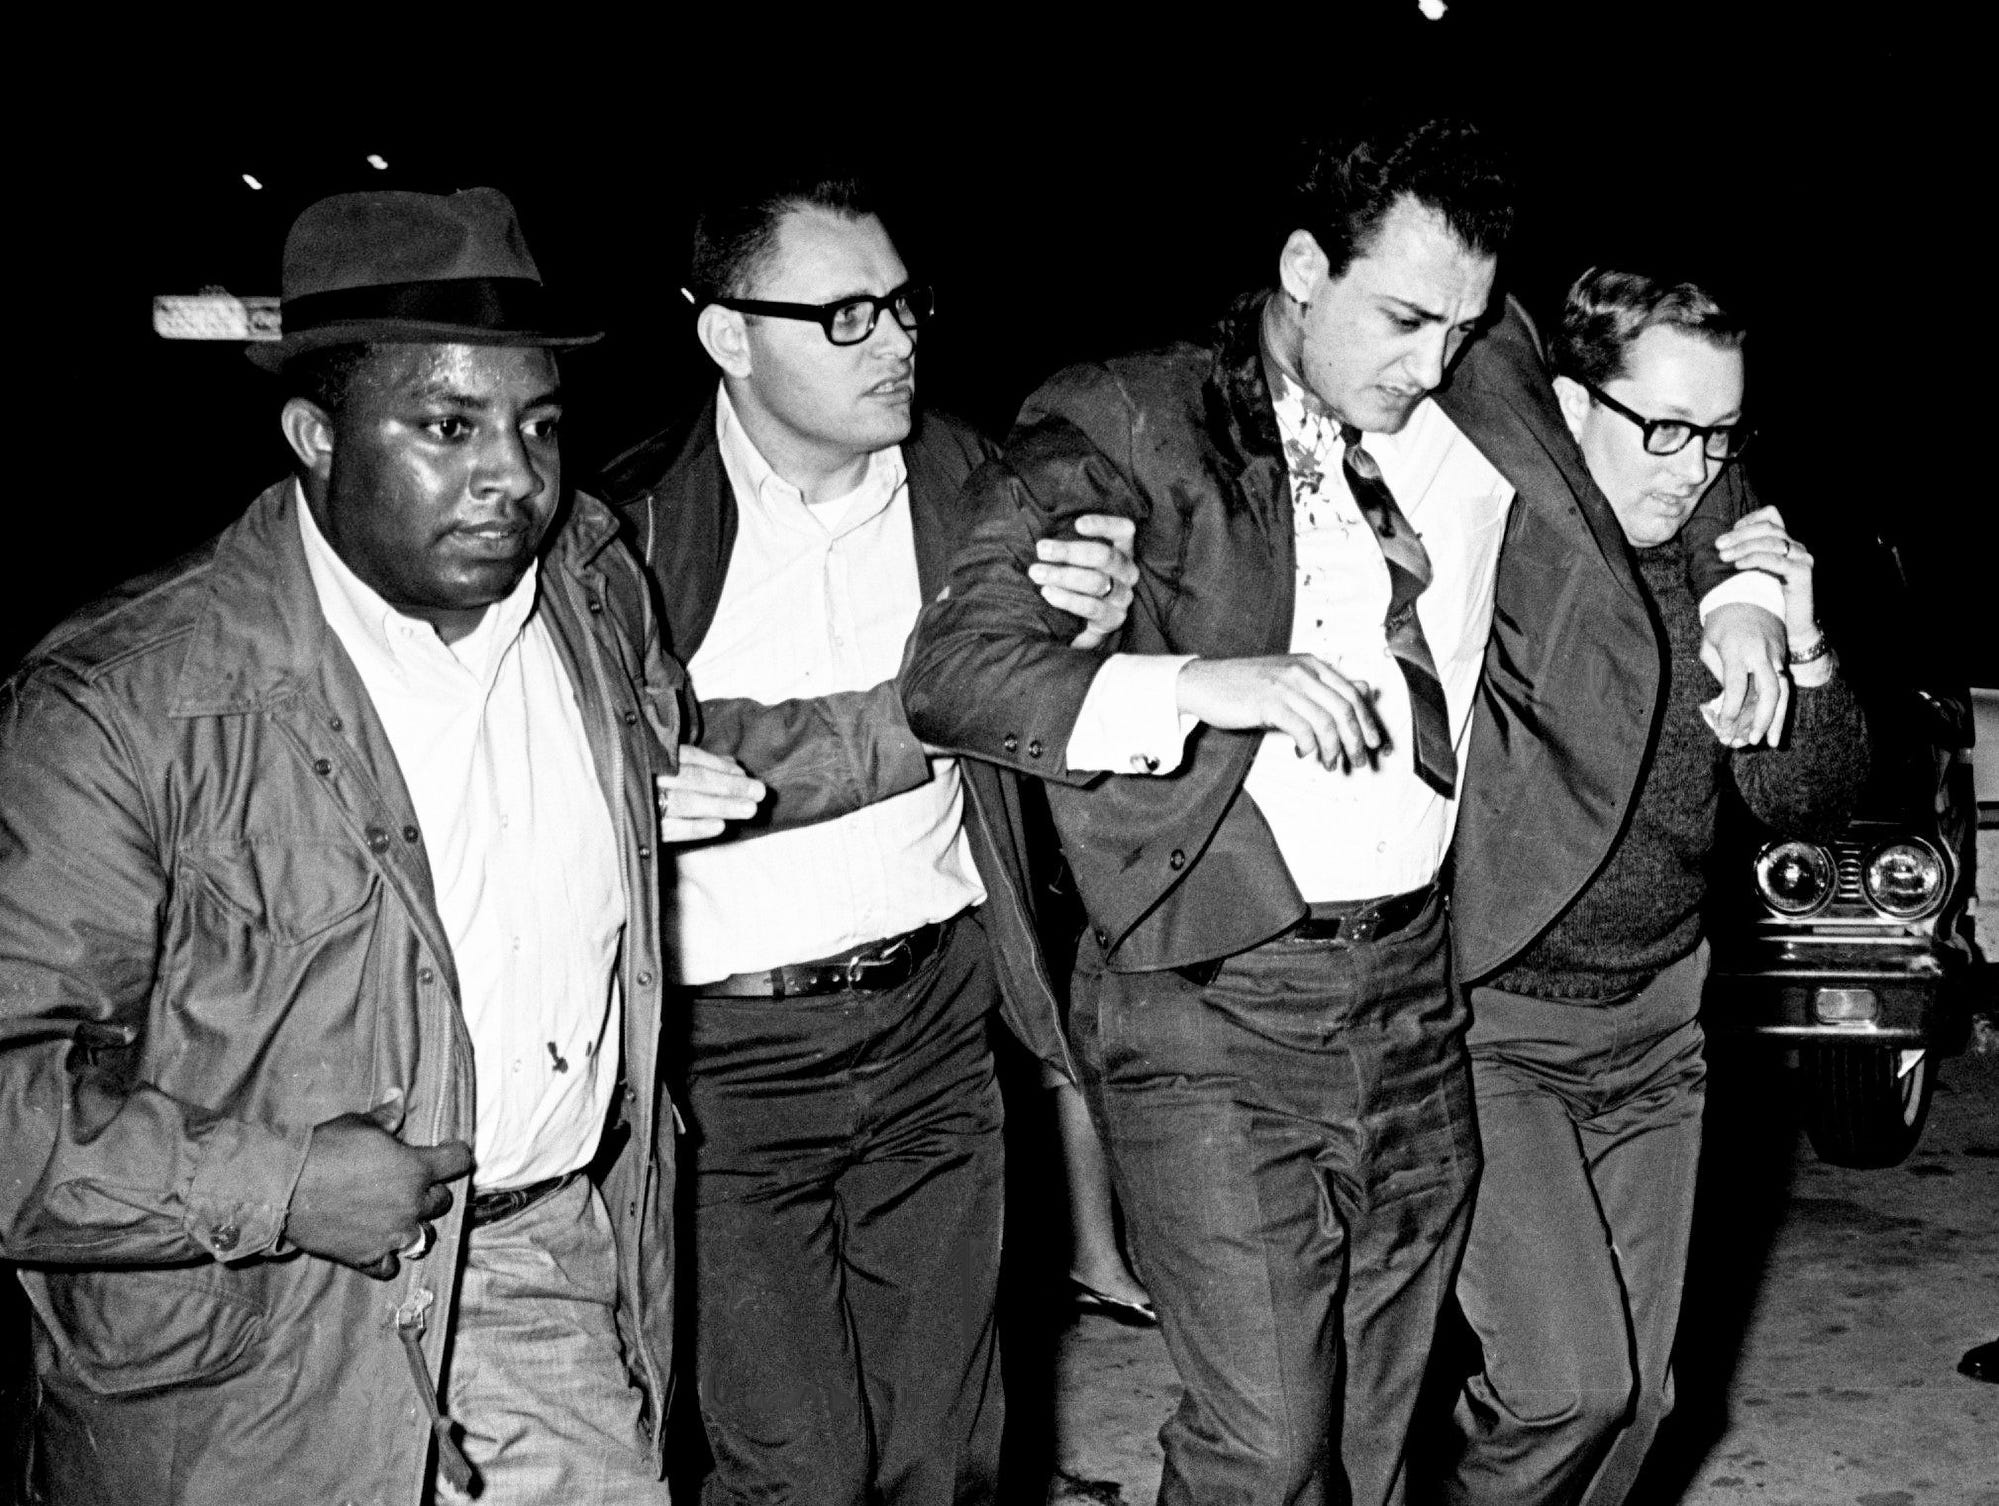 Metro Assistant Police Chief John Sorace, second from right, is helped into Saint Thomas Hospital's emergency room after an unmarked police car in which he was riding was bombarded by rocks from rioters on Centennial Boulevard on April 4, 1968.